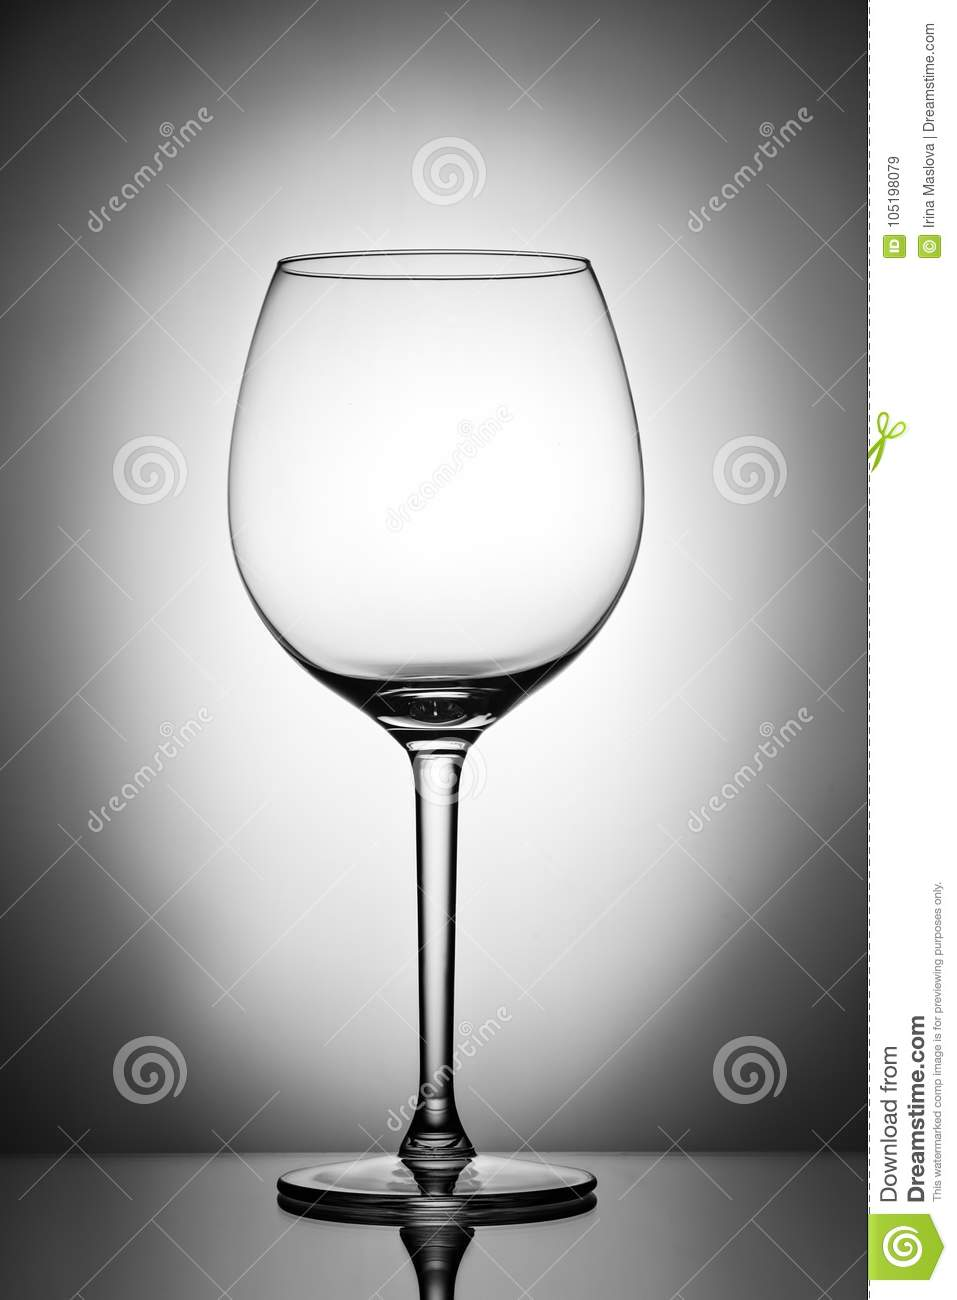 One empty wineglass for red wine on diffusion lit background